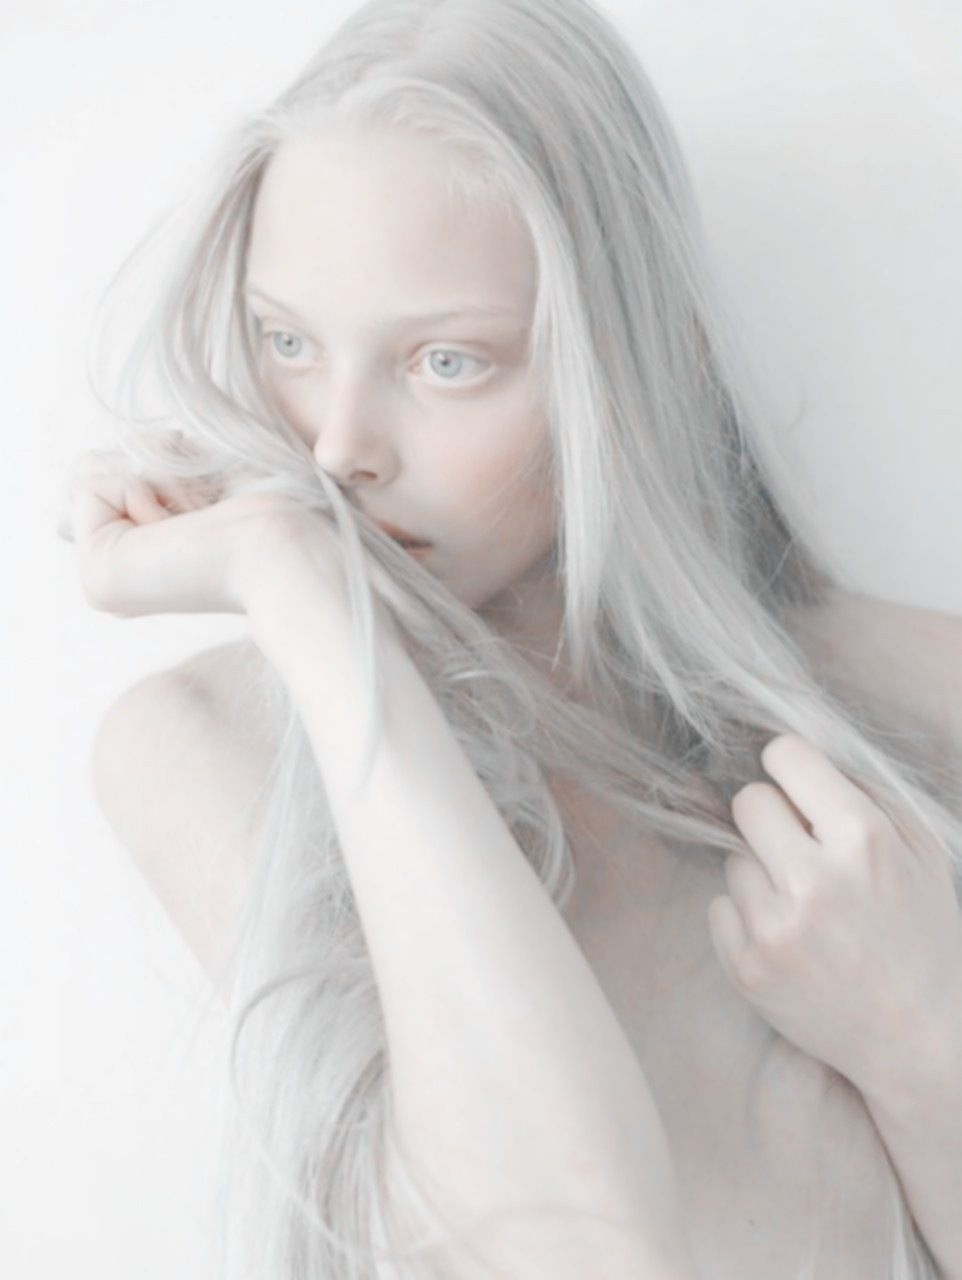 Gorgeous albino women nude #7